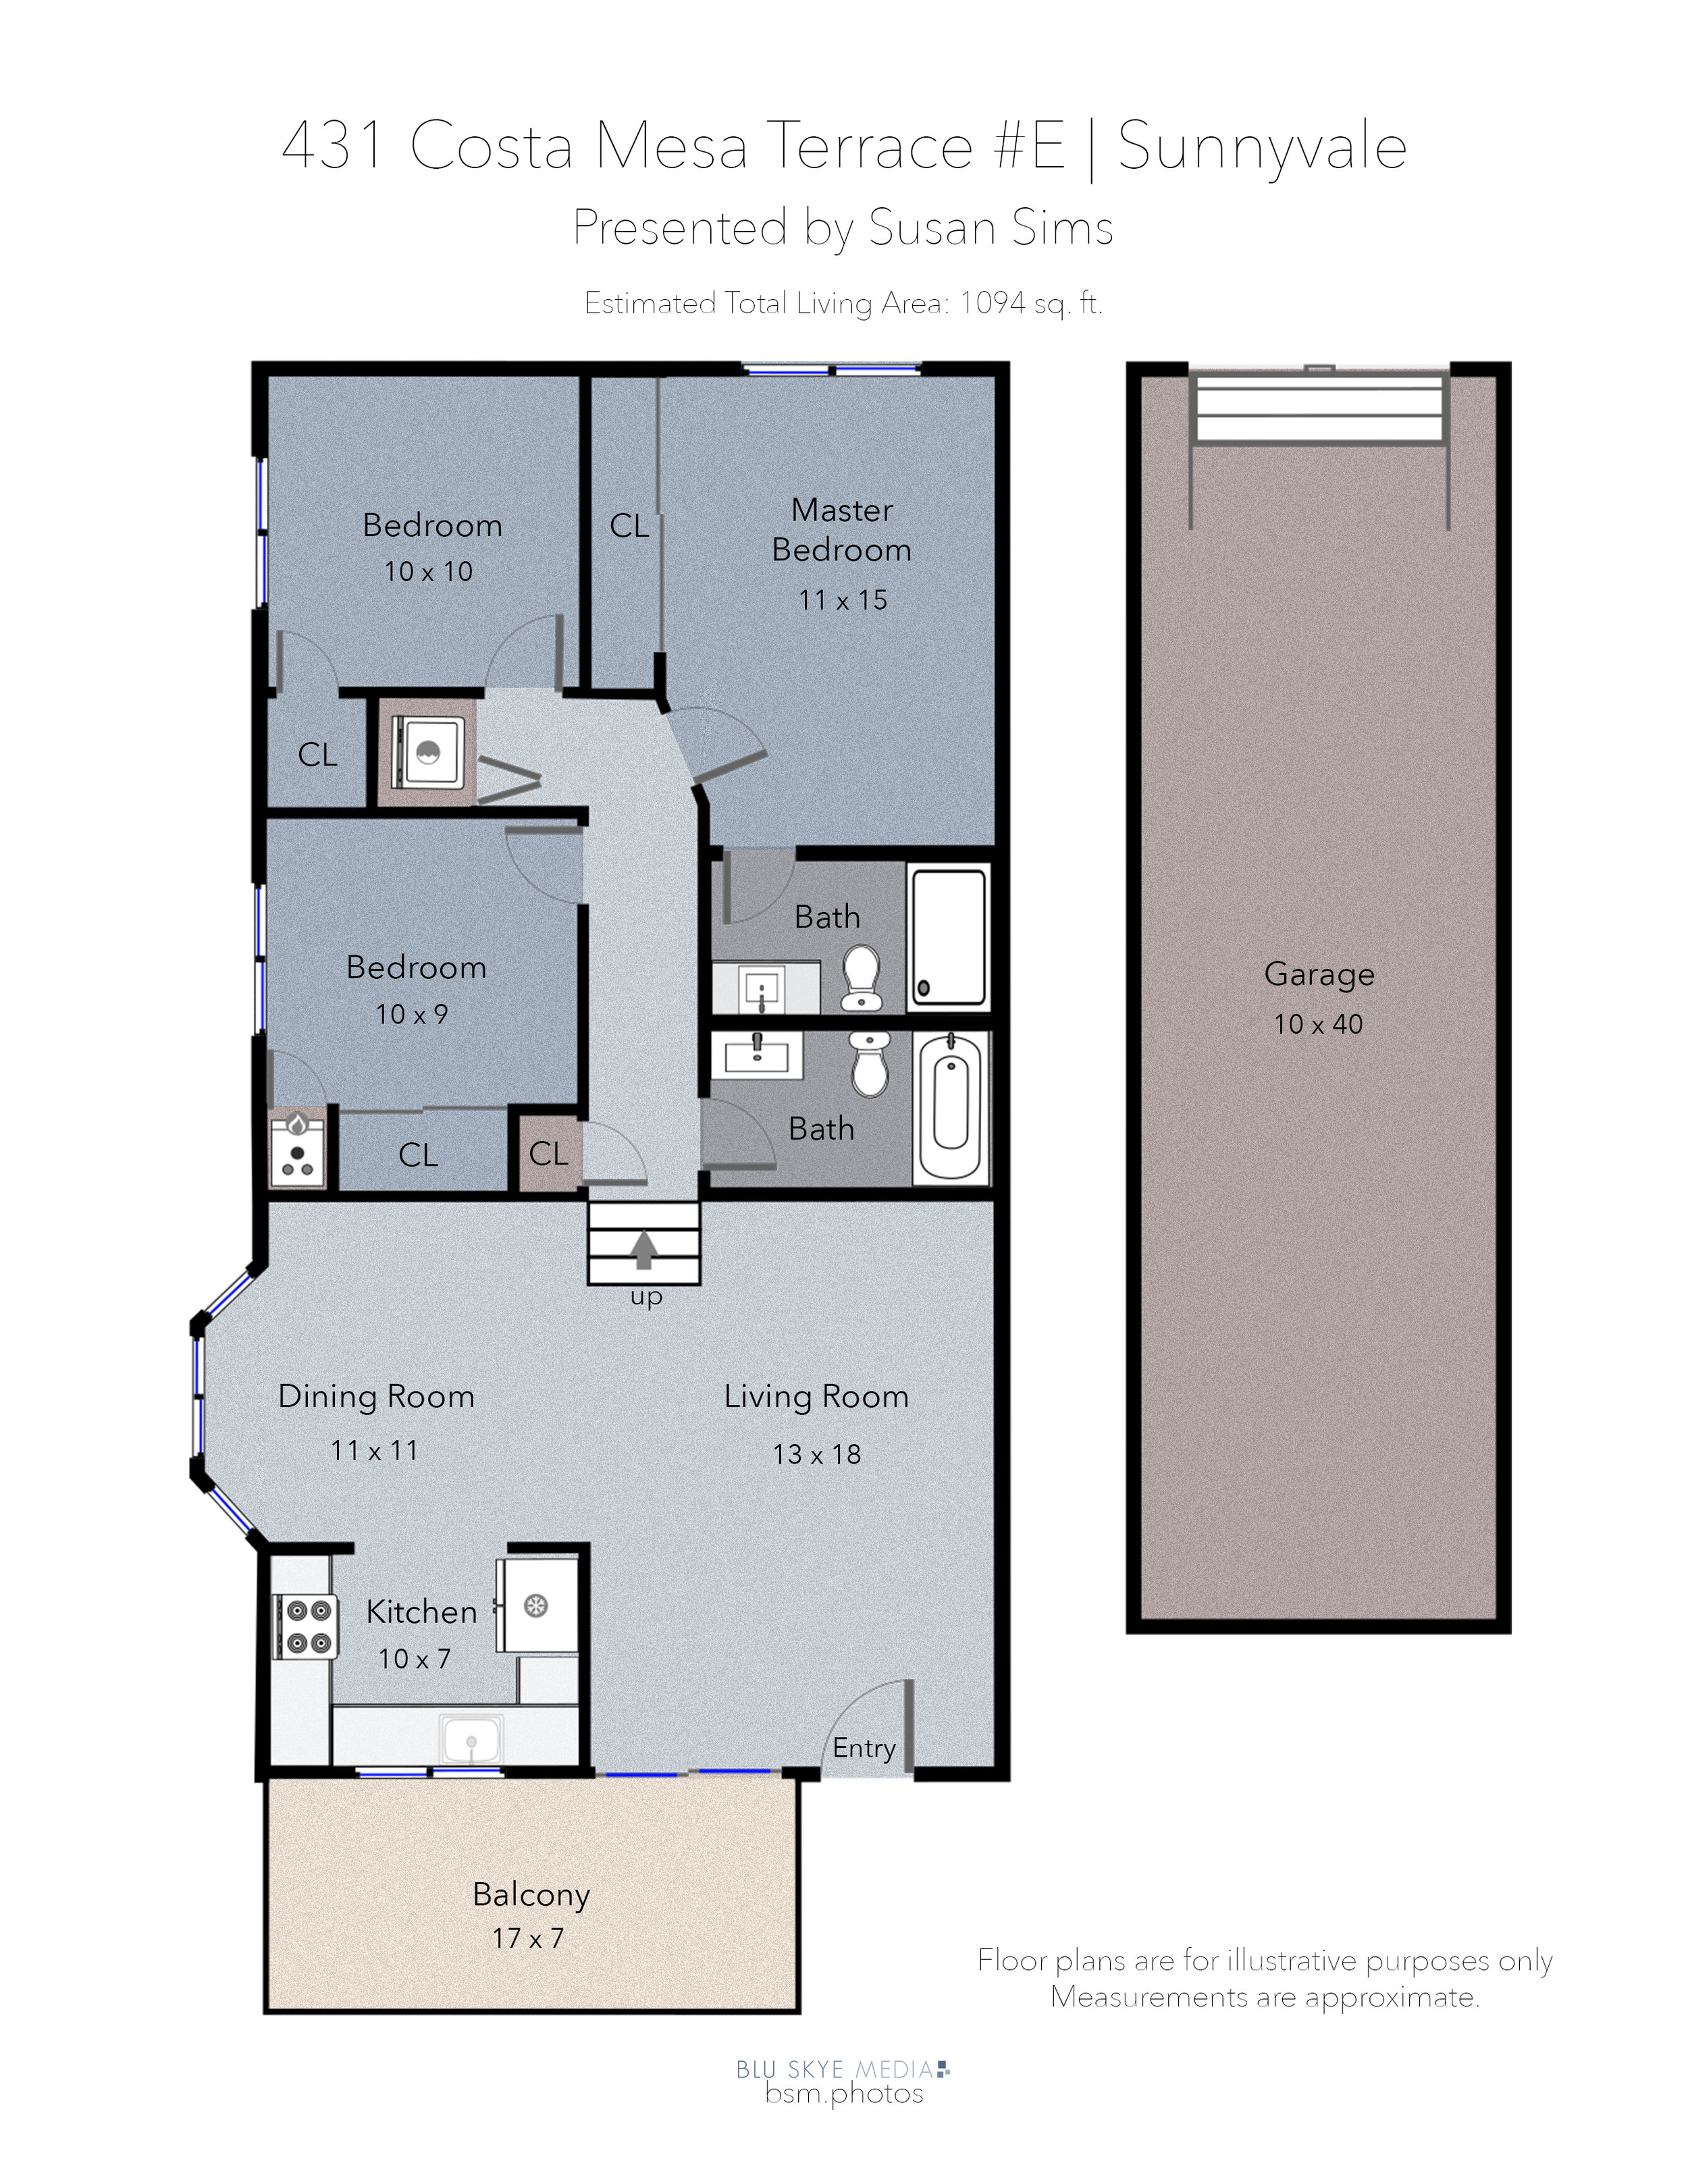 431 Costa Mesa Ter Floor Plan.jpg